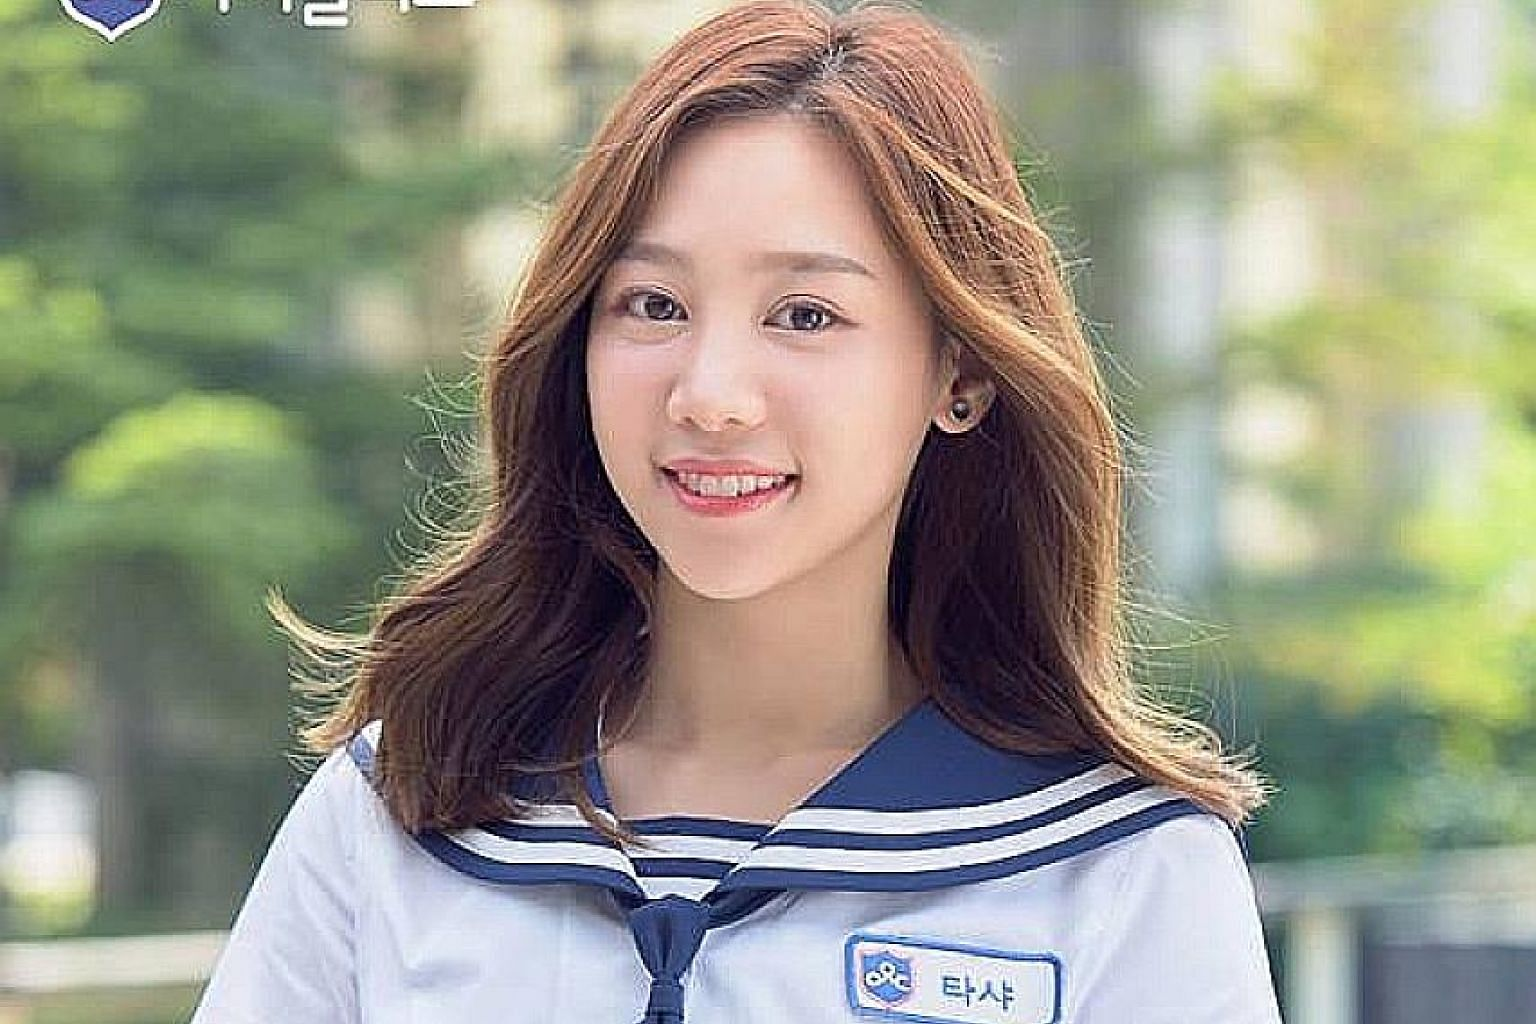 Singaporean Natasha Low, also known as Tasha, is enrolled in Idol School, a South Korean survival reality show where the top nine trainees, decided by public voting, will form a new girl group.